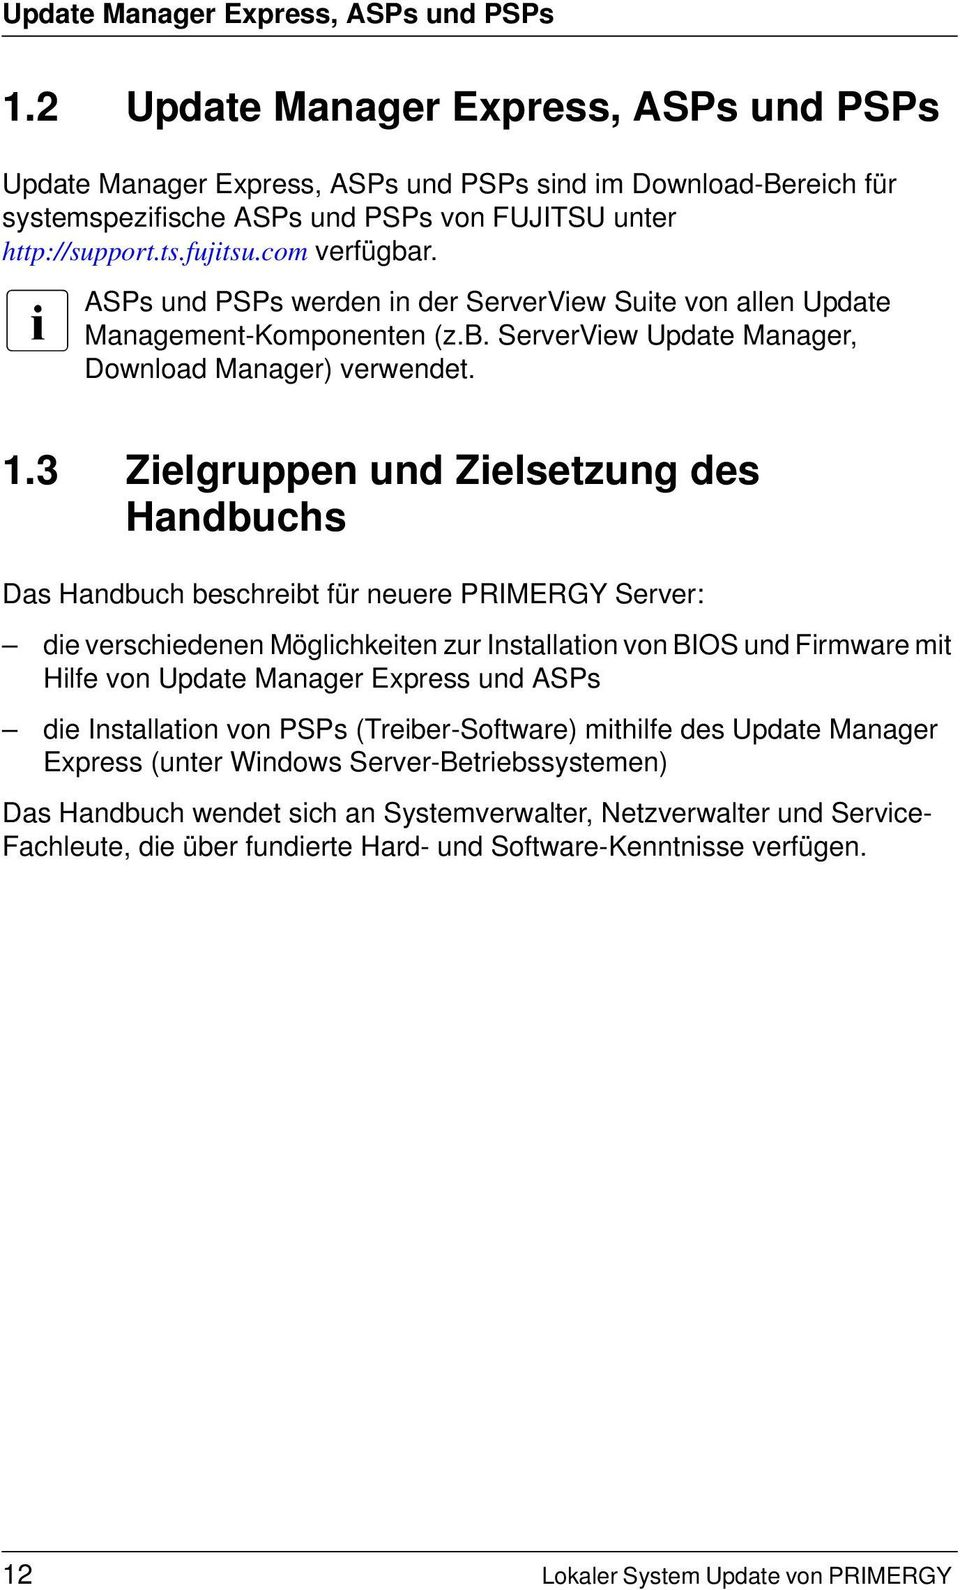 I ASPs und PSPs werden in der ServerView Suite von allen Update Management-Komponenten (z.b. ServerView Update Manager, Download Manager) verwendet. 1.